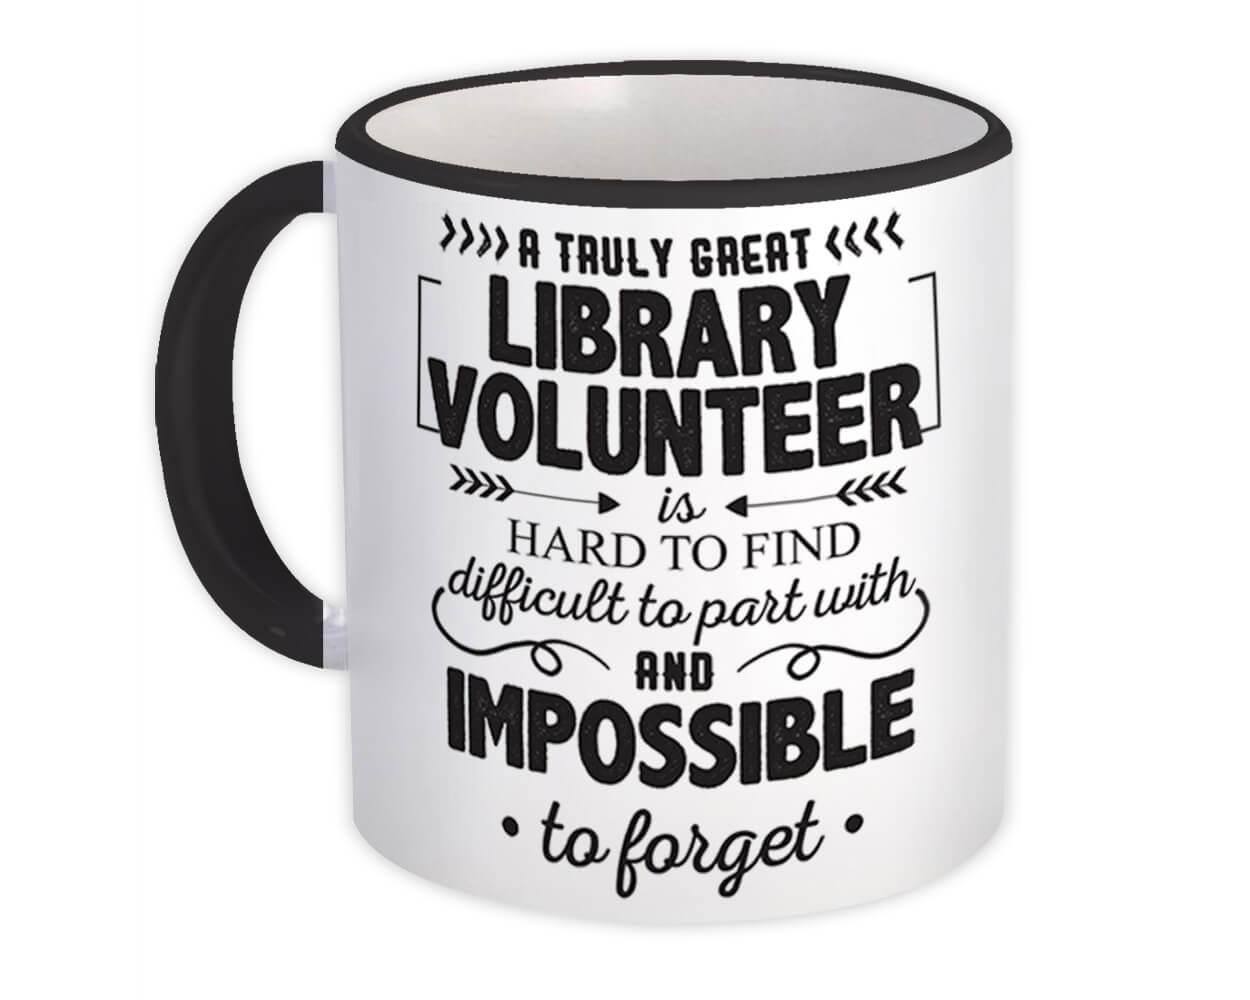 Library Volunteer Hard to Find Impossible to Forget : Gift Mug Occupation Work